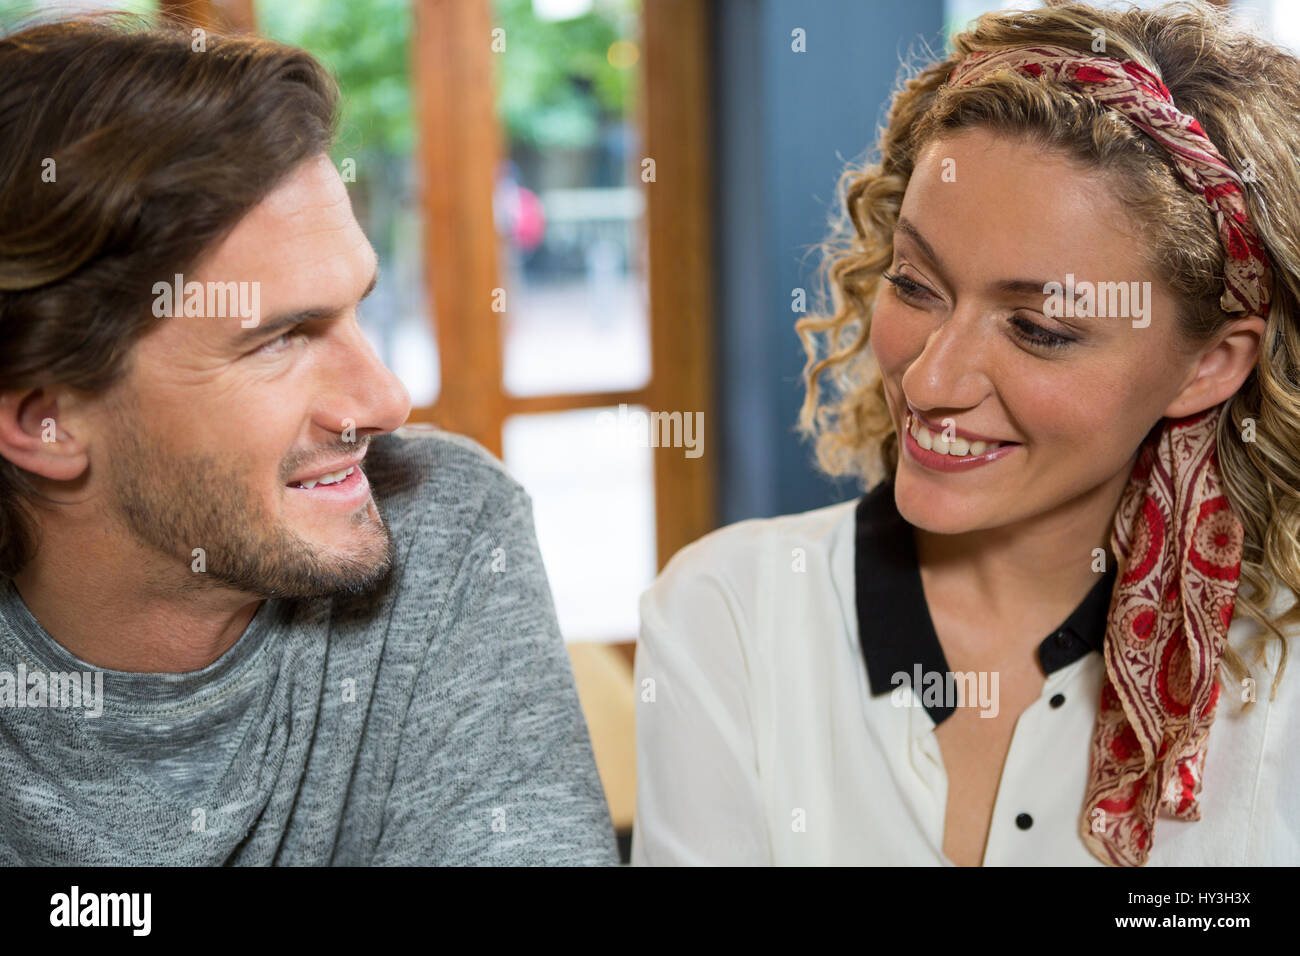 Smiling young couple looking at each other in coffee shop - Stock Image